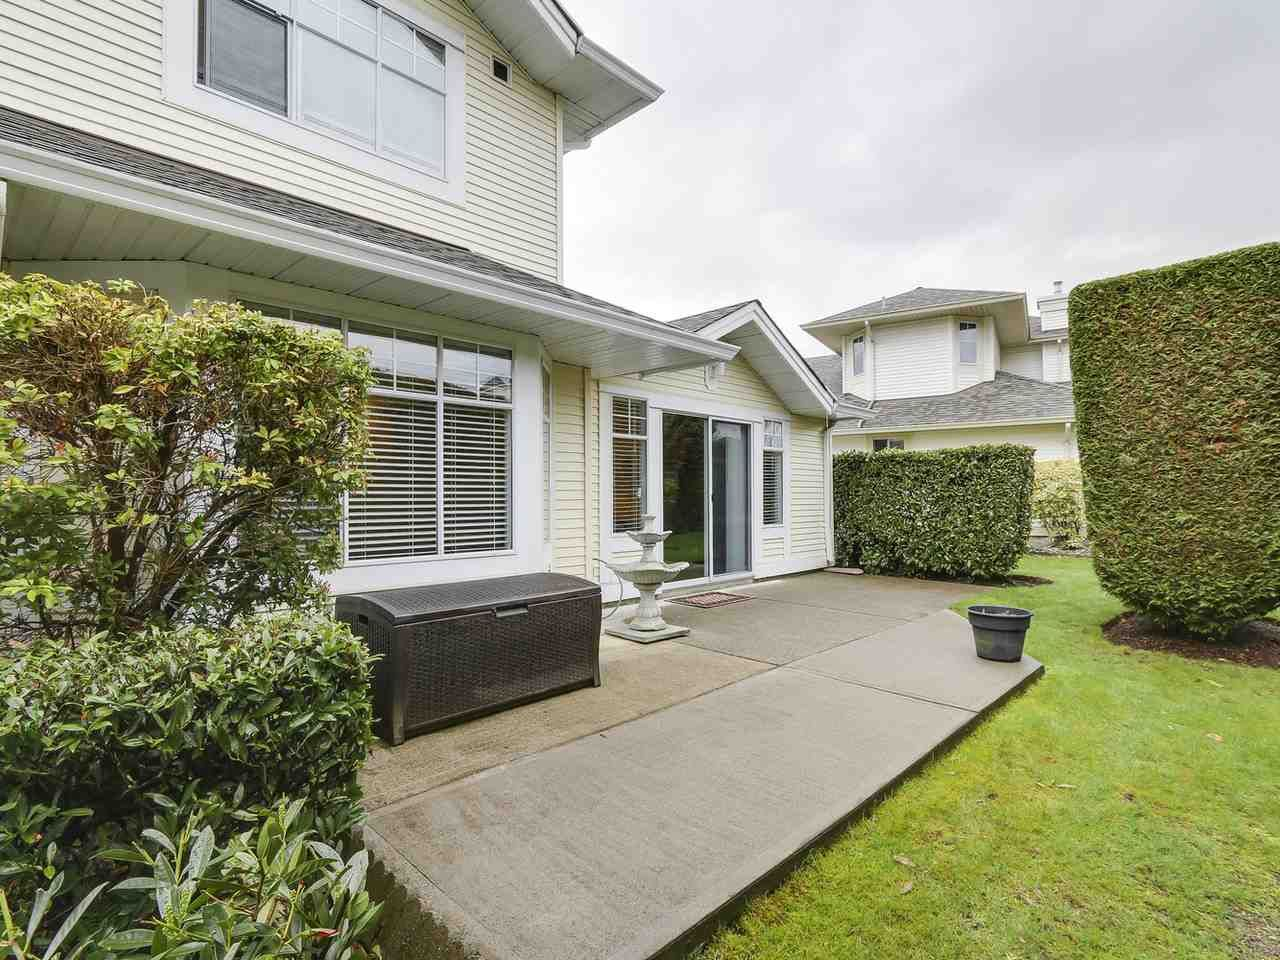 """Photo 13: Photos: 72 9208 208 Street in Langley: Walnut Grove Townhouse for sale in """"CHURCHILL PARK"""" : MLS®# R2155500"""